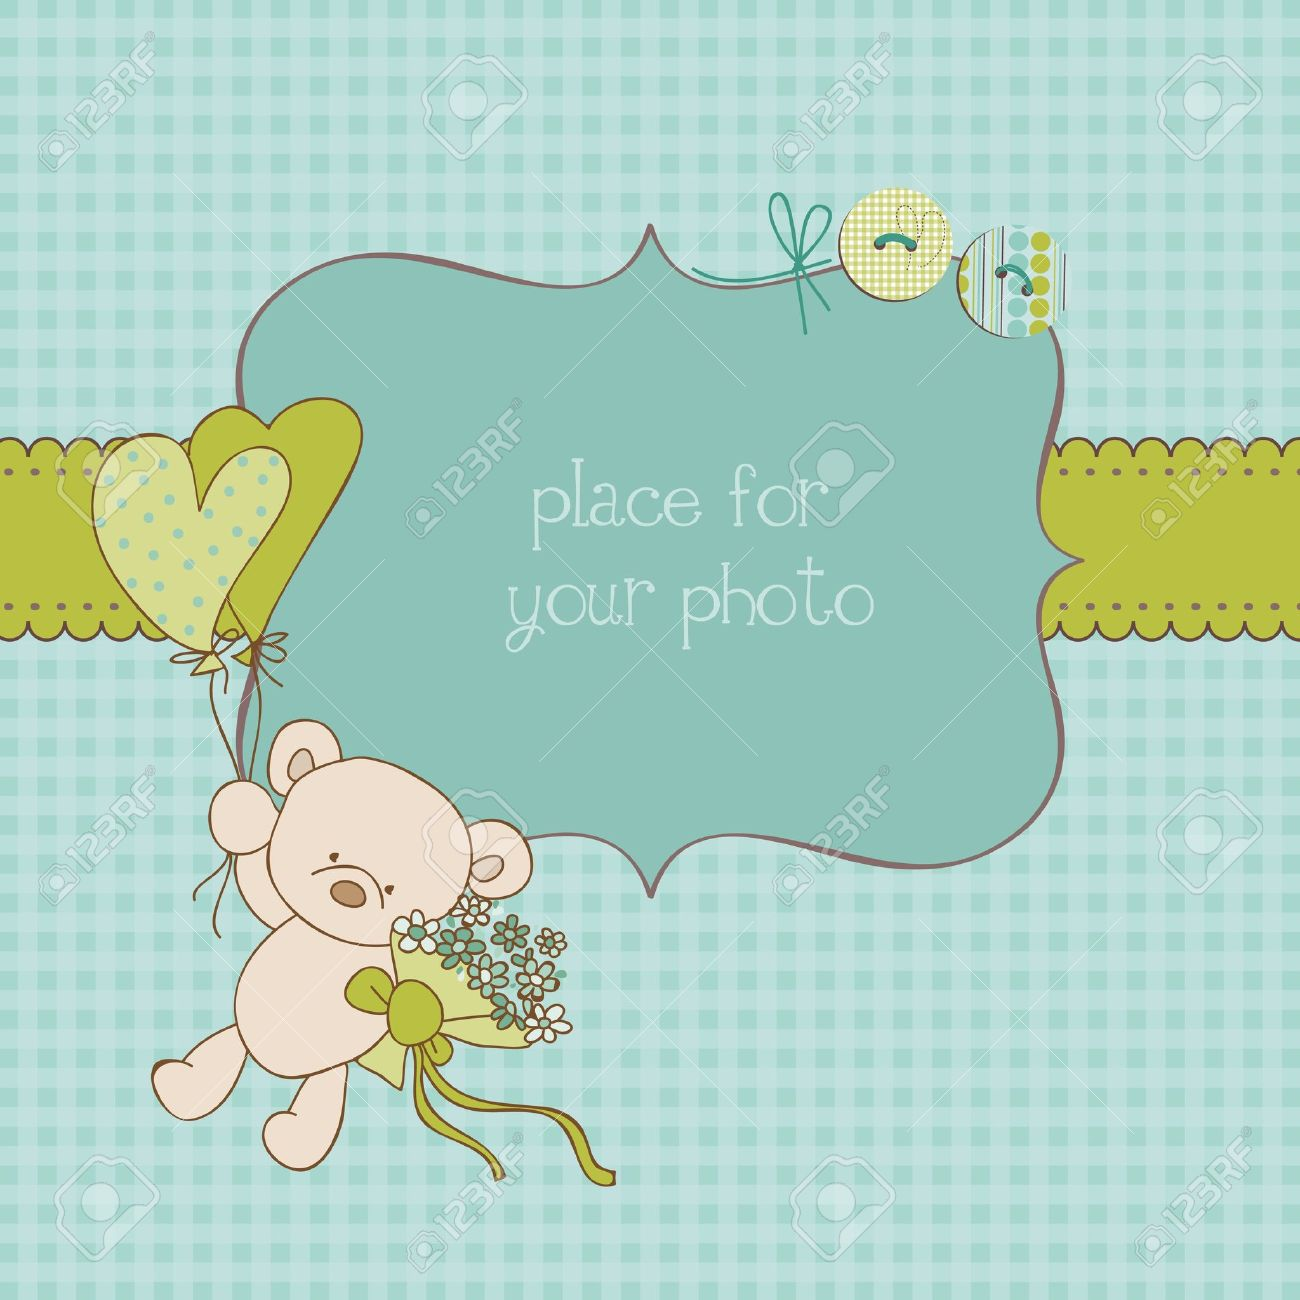 Baby Greeting Card With Photo Frame And Place For Your Text In